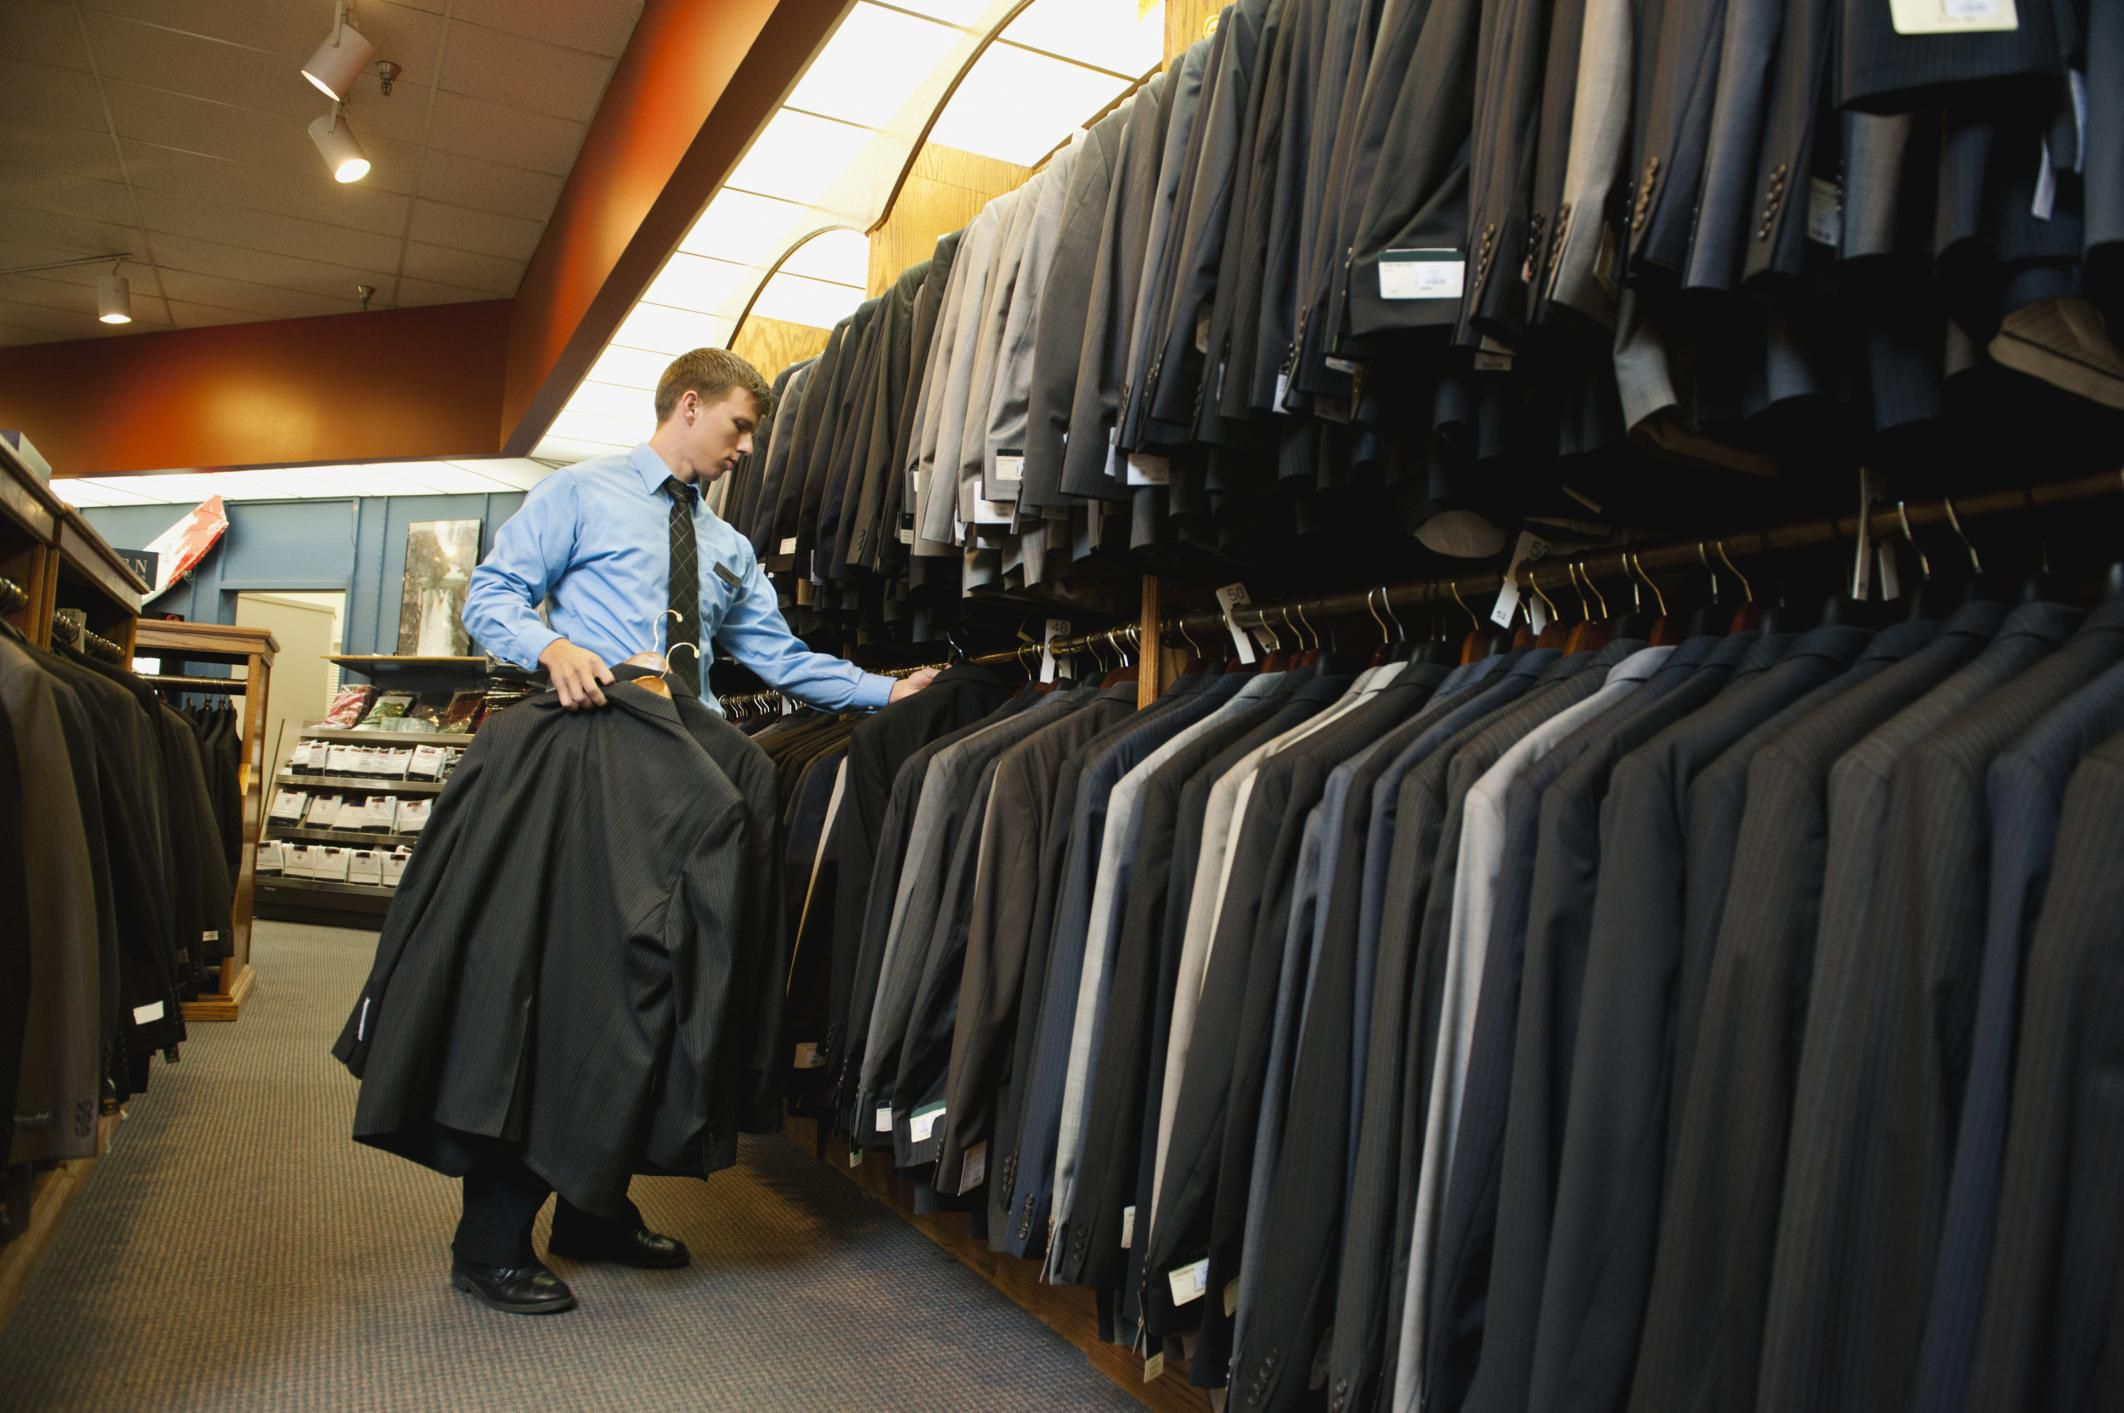 74d2303ad Where to Donate Business Suits to Those in Need